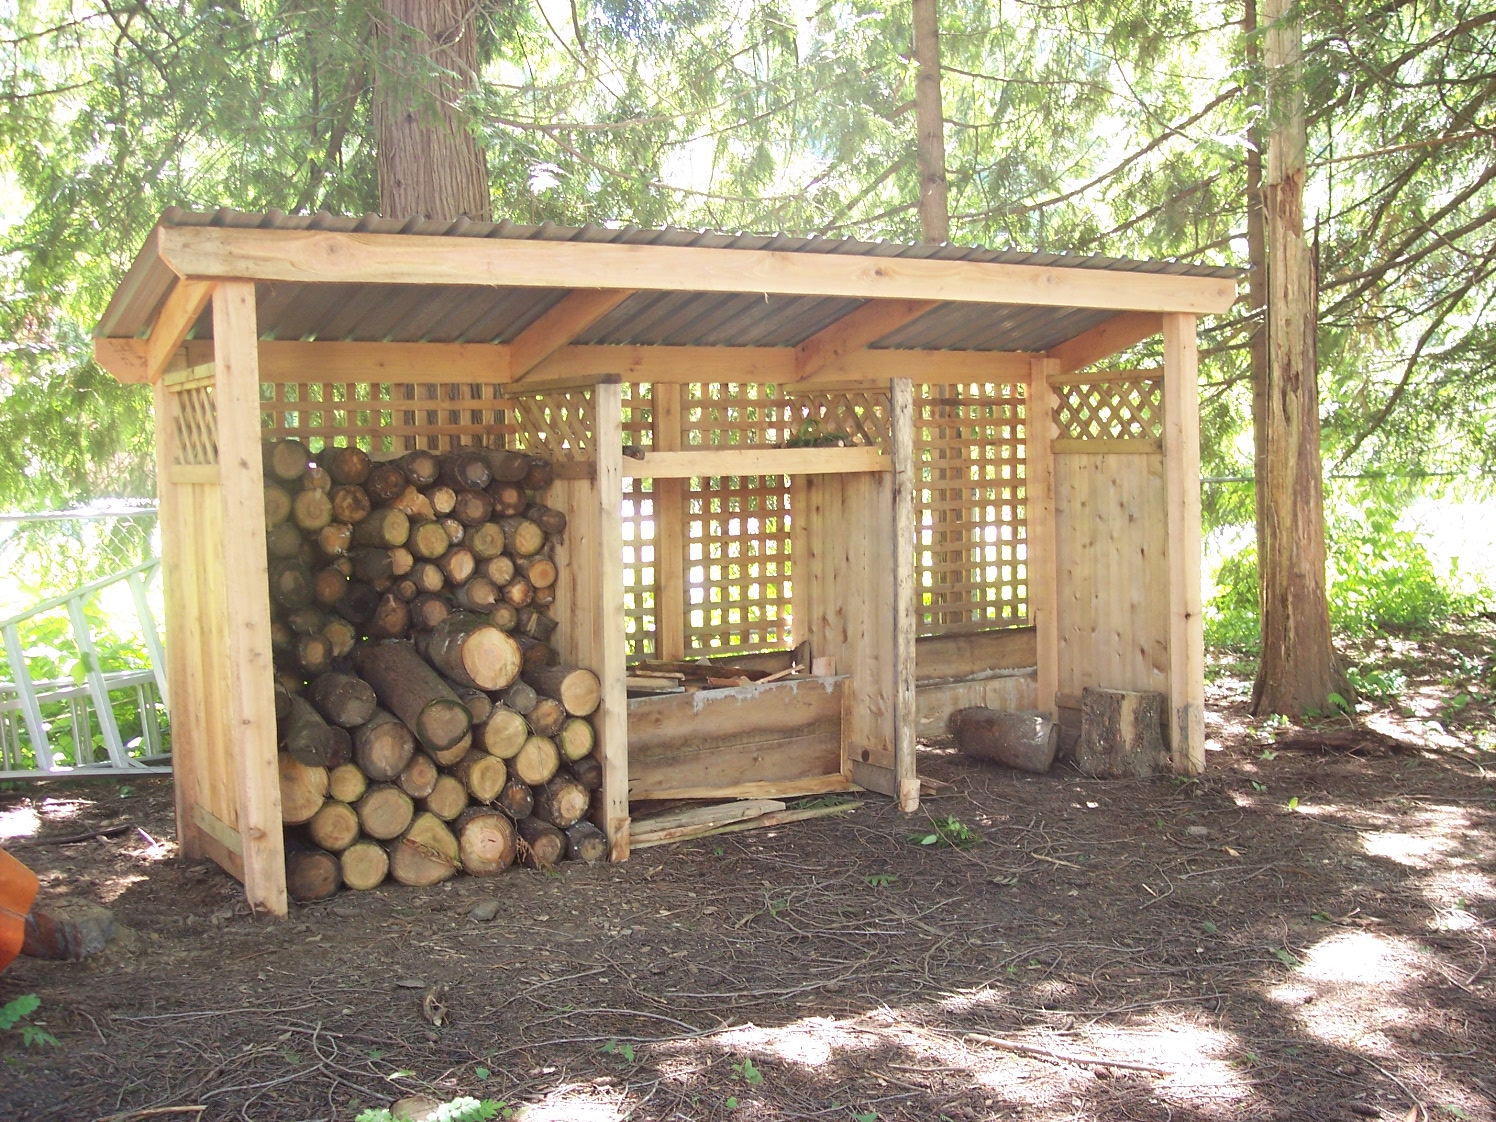 diy garden shed plans free | Quick Woodworking Projects